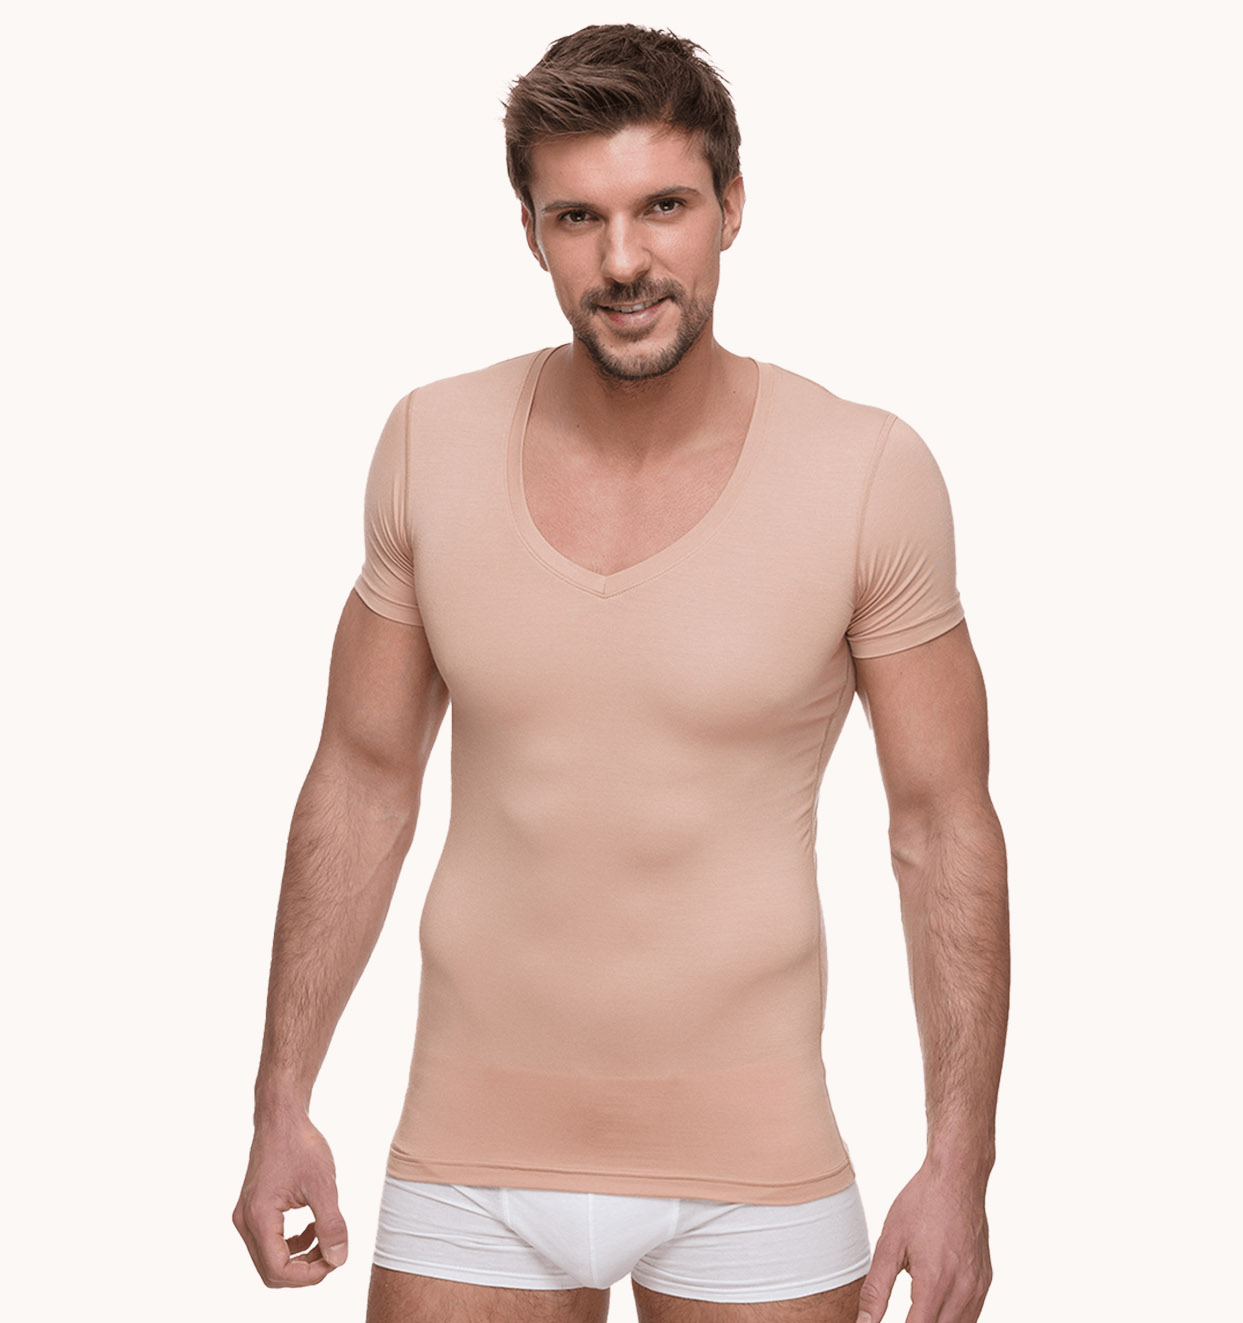 sweat-man.png